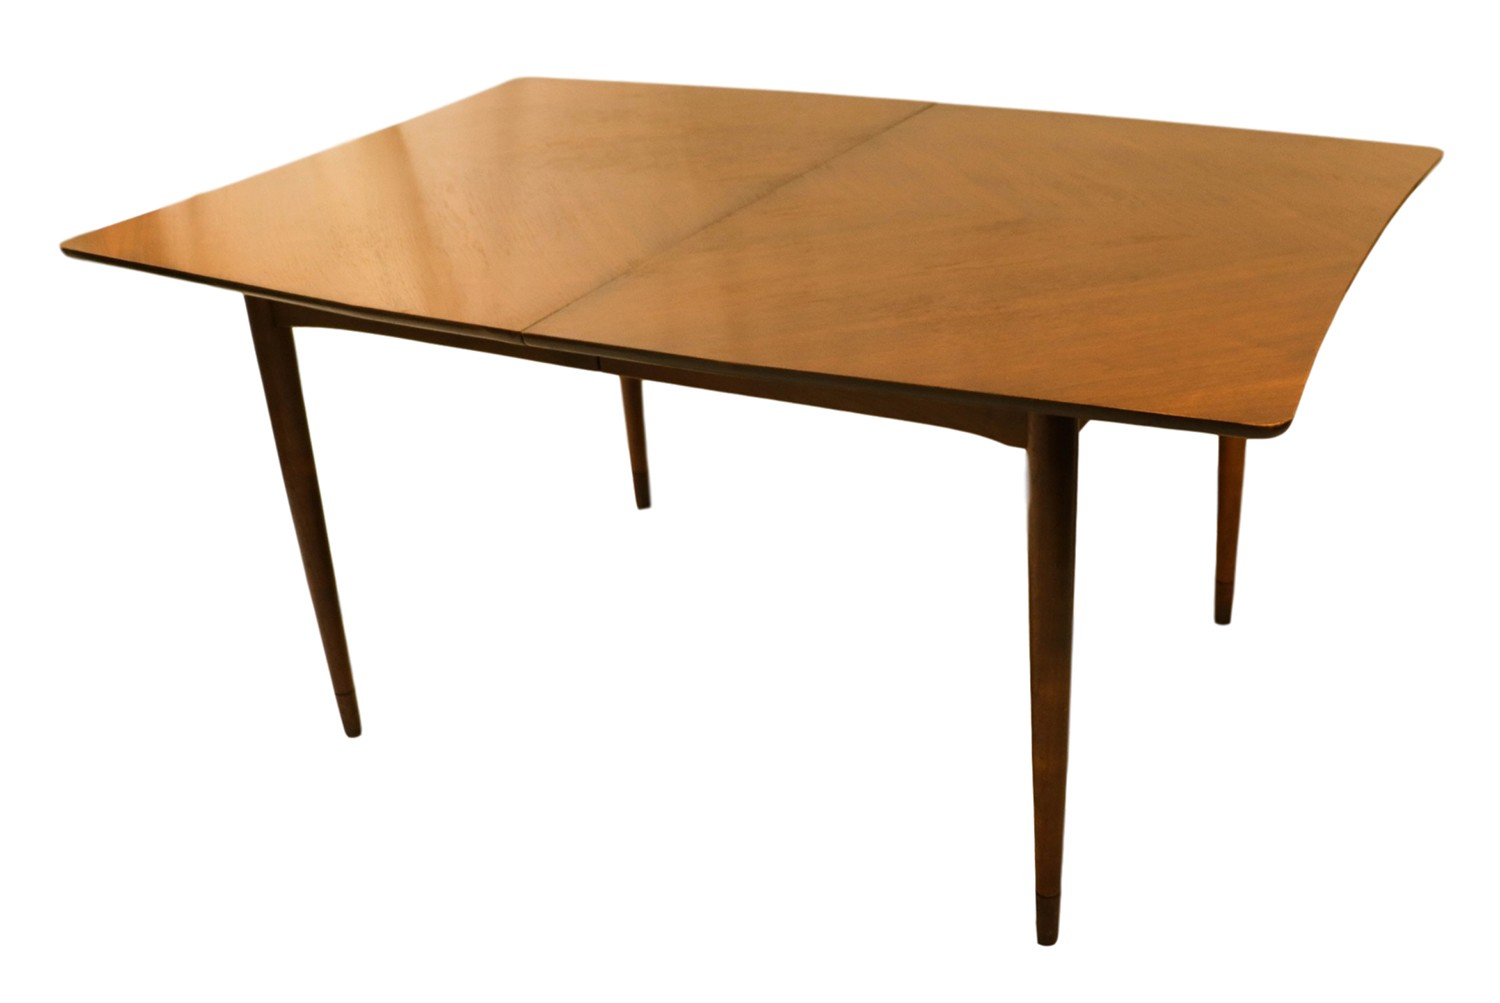 Mid Century Modern American of Martinsville Walnut Dining  : Mid Century Modern American of Martinsville Walnut Dining Table 8 from marykaysfurniture.com size 1500 x 1003 jpeg 197kB